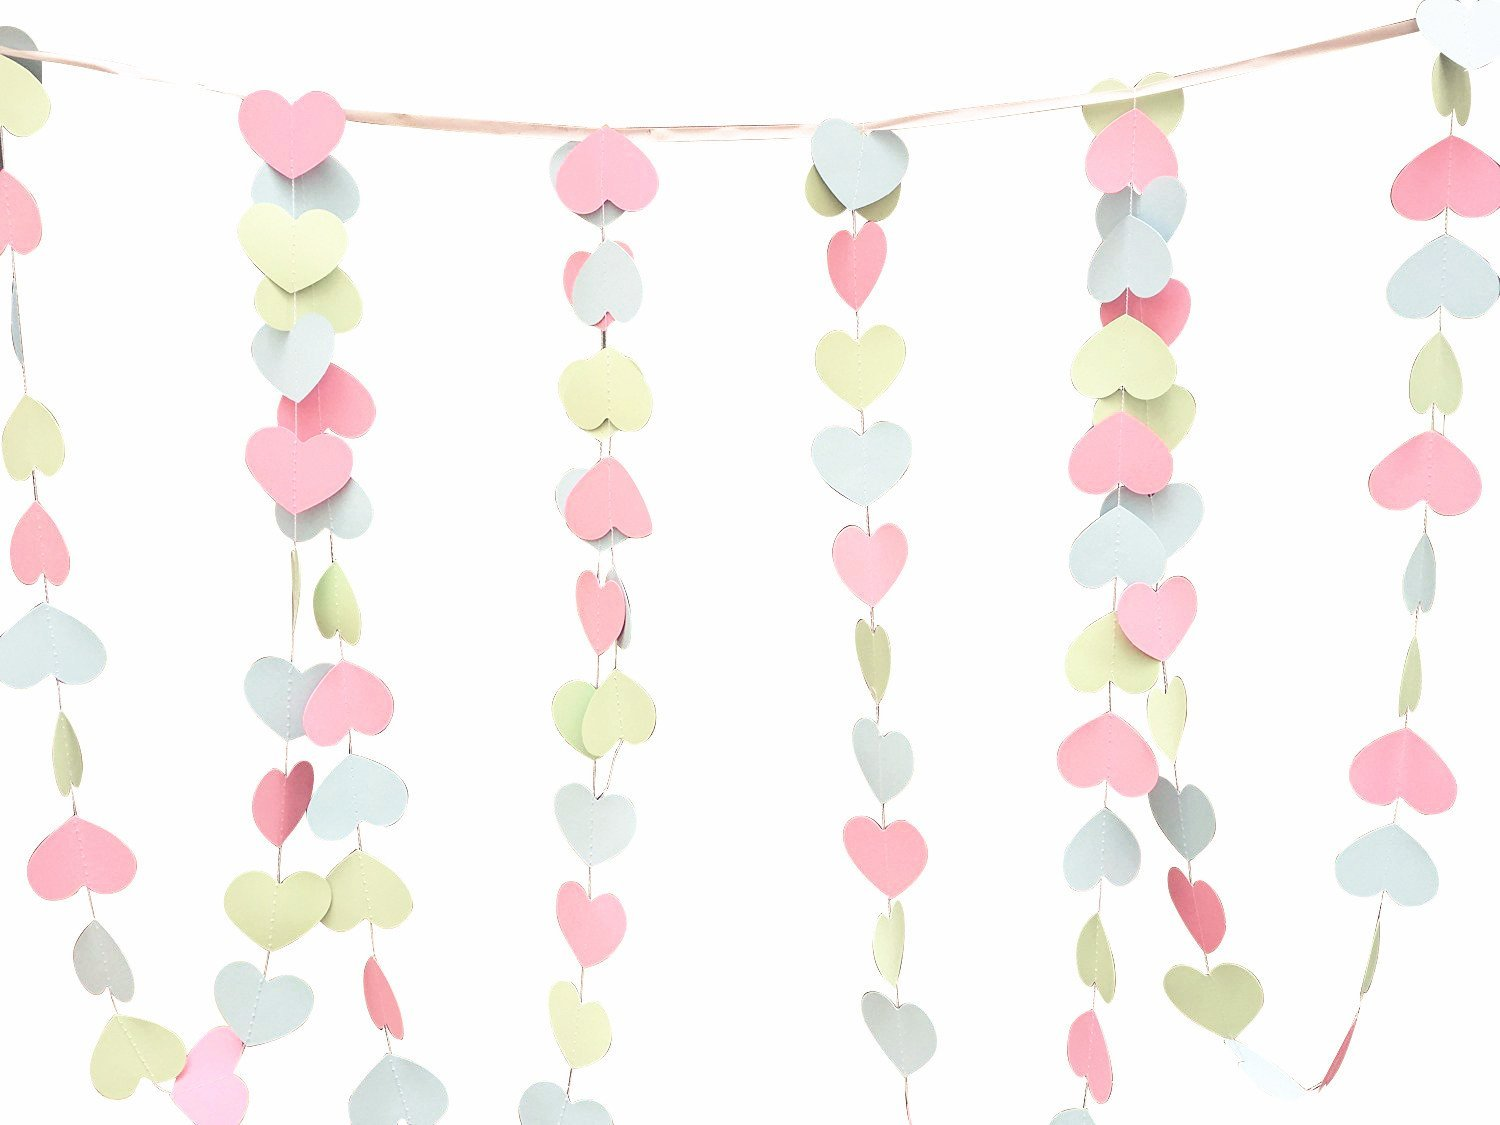 Pack of 4pcs 10-feet Long Paper Sweet Heart Shaped Hanging Decoration String Paper Garland Wedding Birthday Party Baby Shower Background Decorative Color Pink Blue Mint